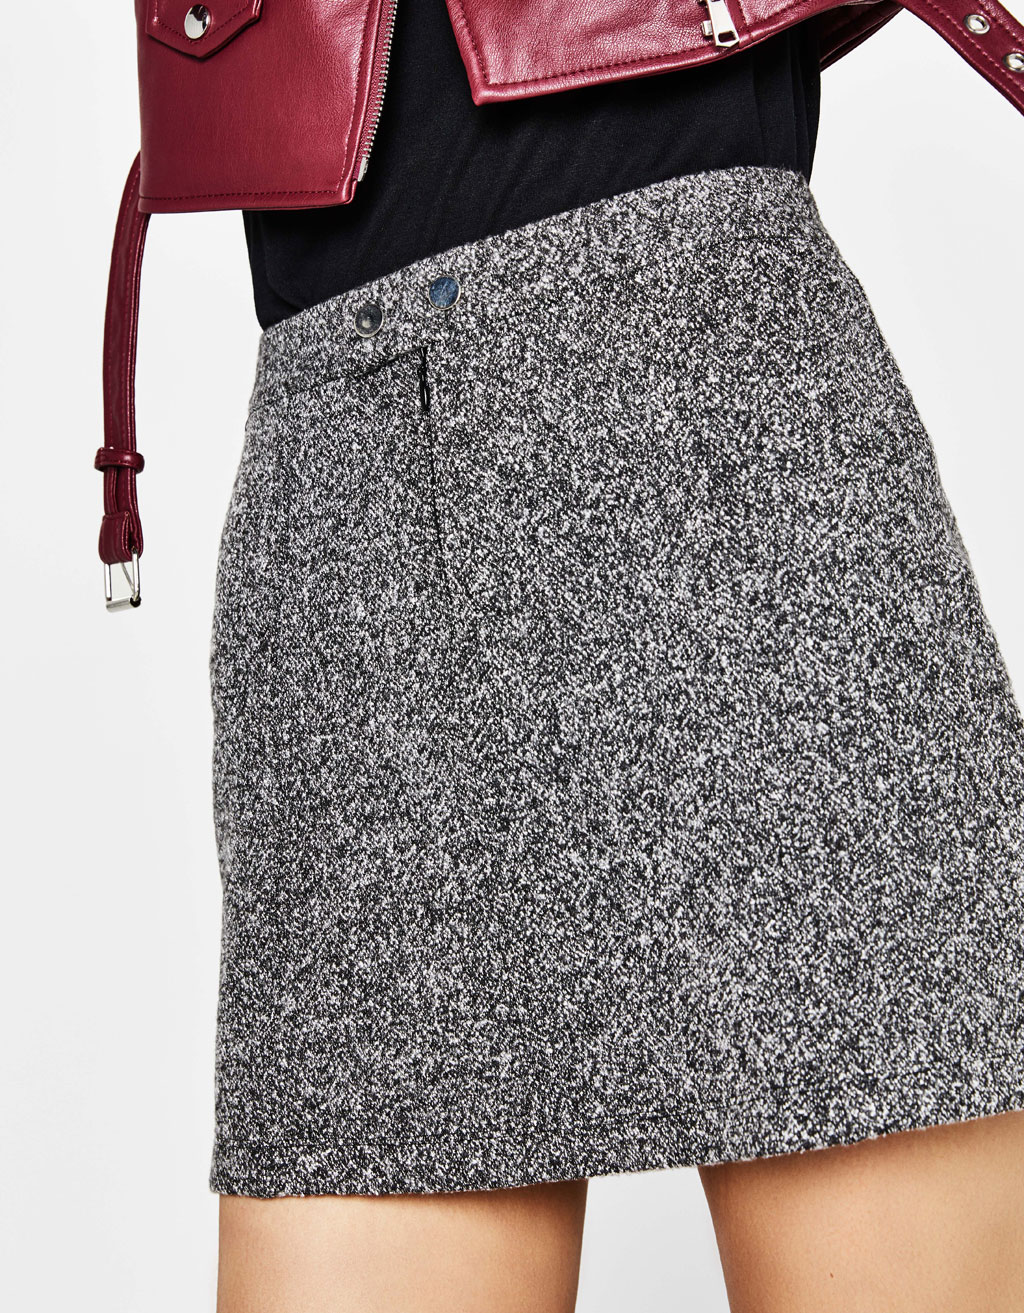 Mini skirt with brooches